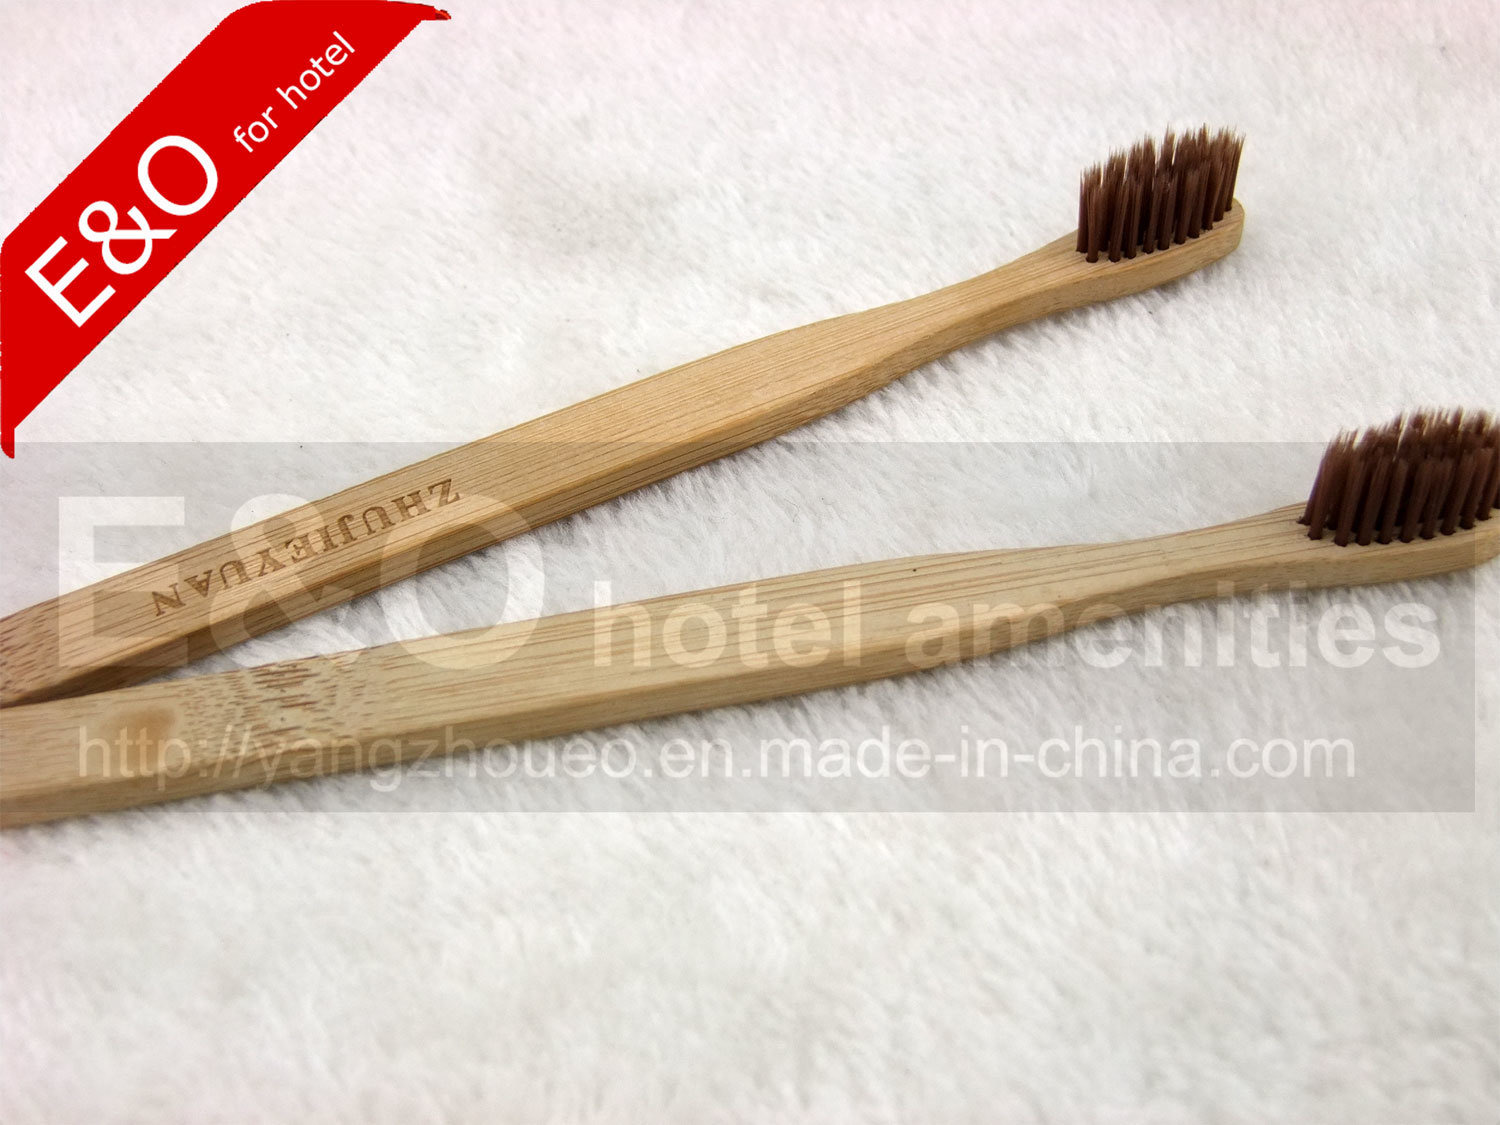 2-PC Set Eco-Friendly Bamboo Toothbrush with Bamboo Bristle